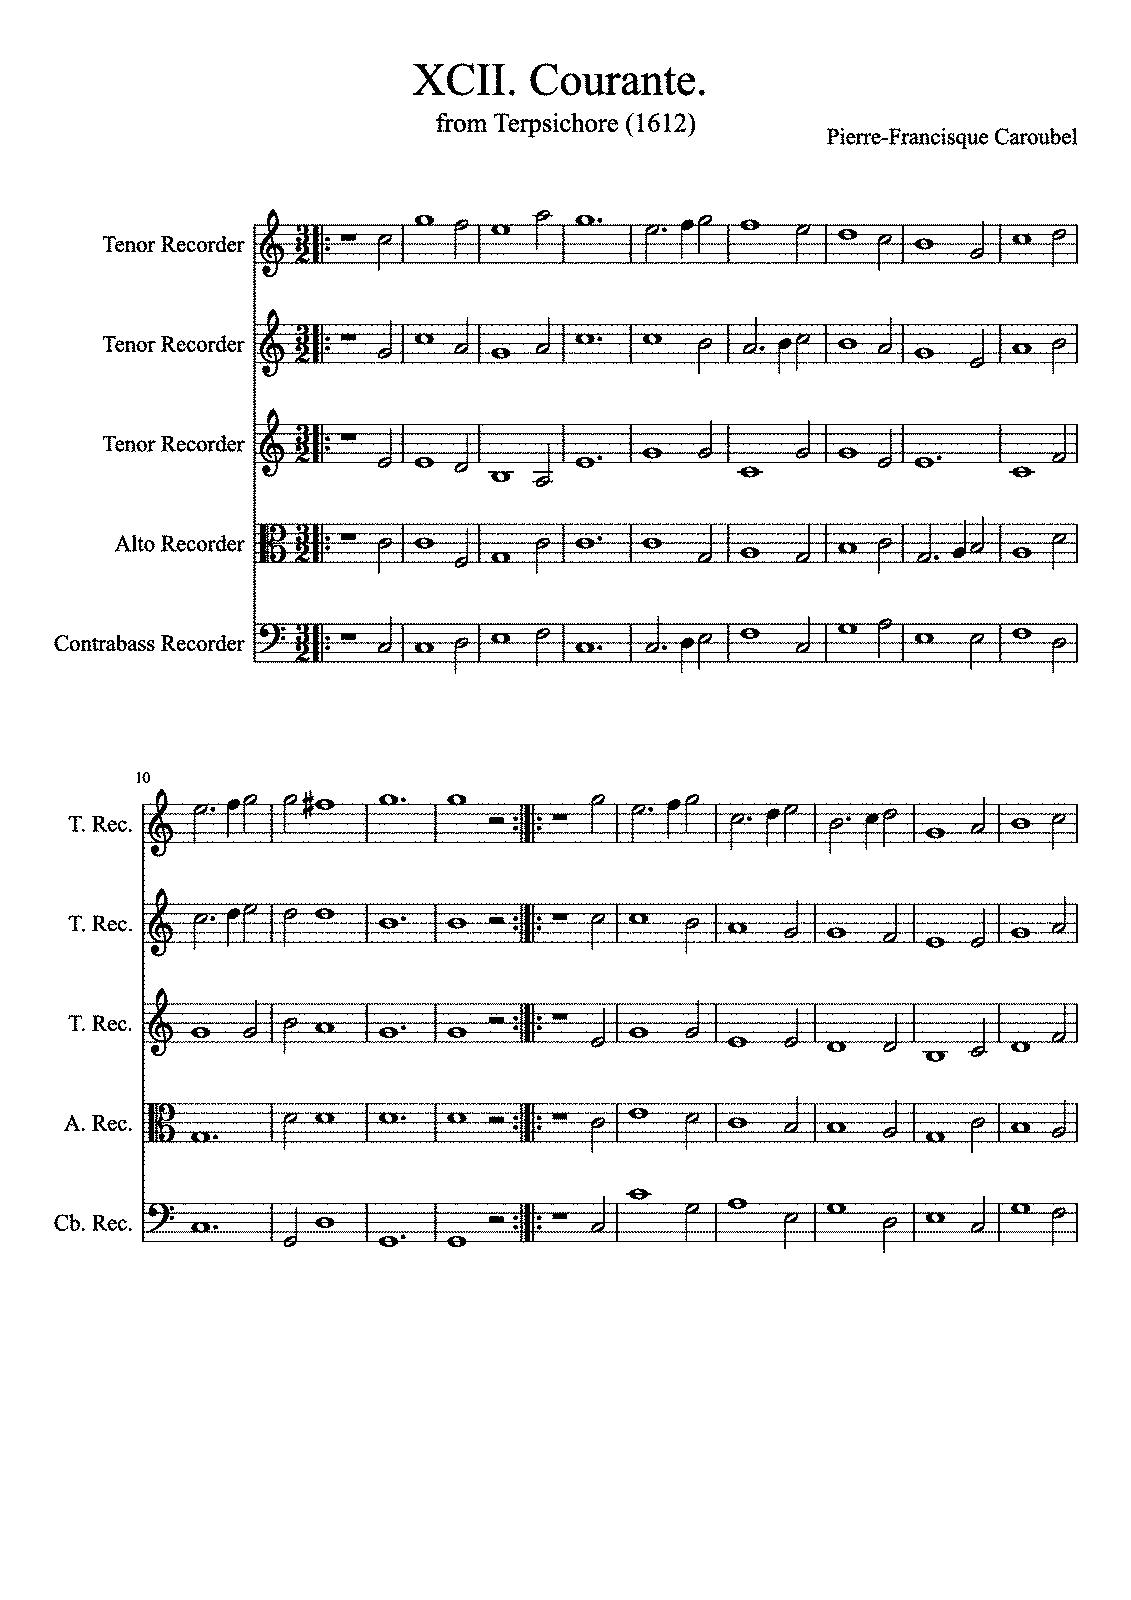 PMLP591398-XCII Courante from Terpsichore Francisque Caroubel 1612.pdf